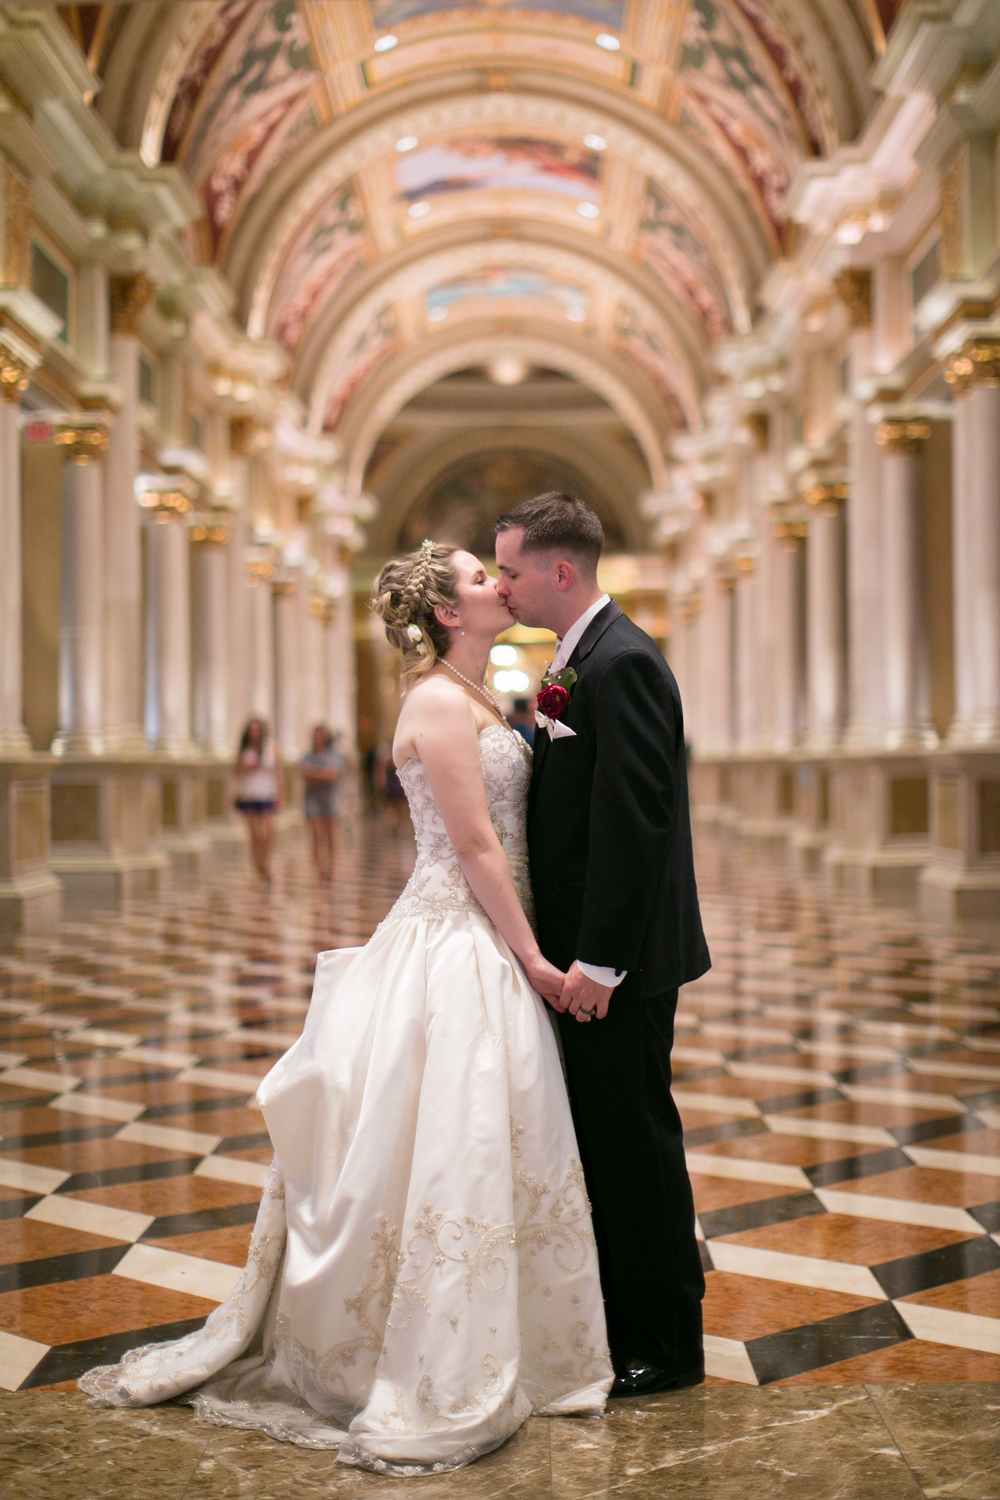 Wedding Photos in the gran hallway at the entrance of the venetian.  Las Vegas Wedding Planner Andrea Eppolito  |  Wedding at The Venetian Las Vegas  |  Florals and Decor by Naakiti Floral  |  Photos by Meg Ruth